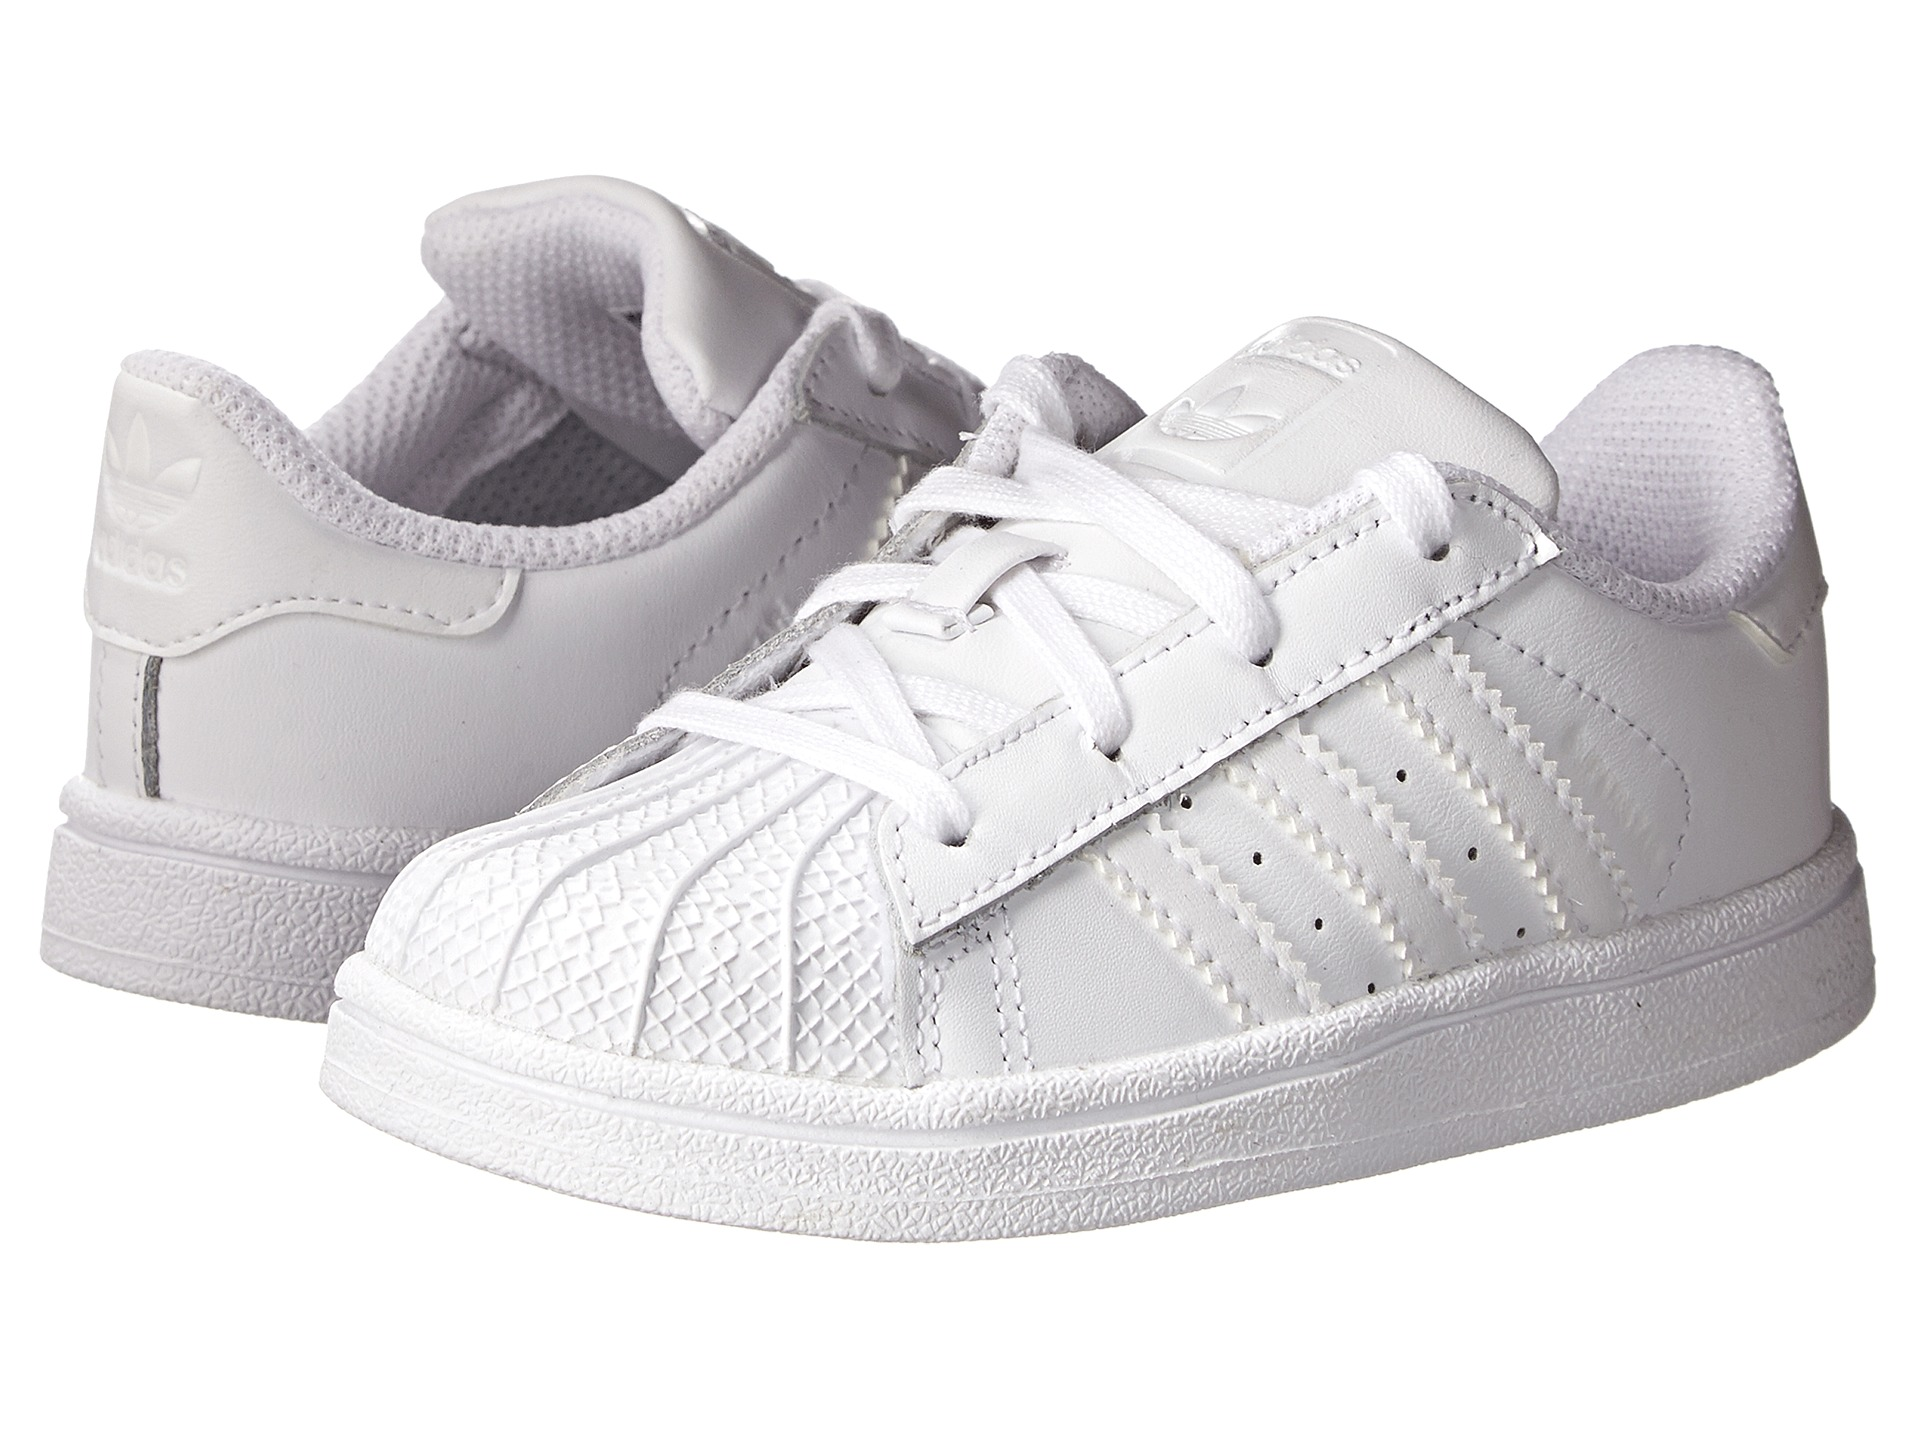 adidas Men's Superstar Foundation Originals Basketball Shoe 10